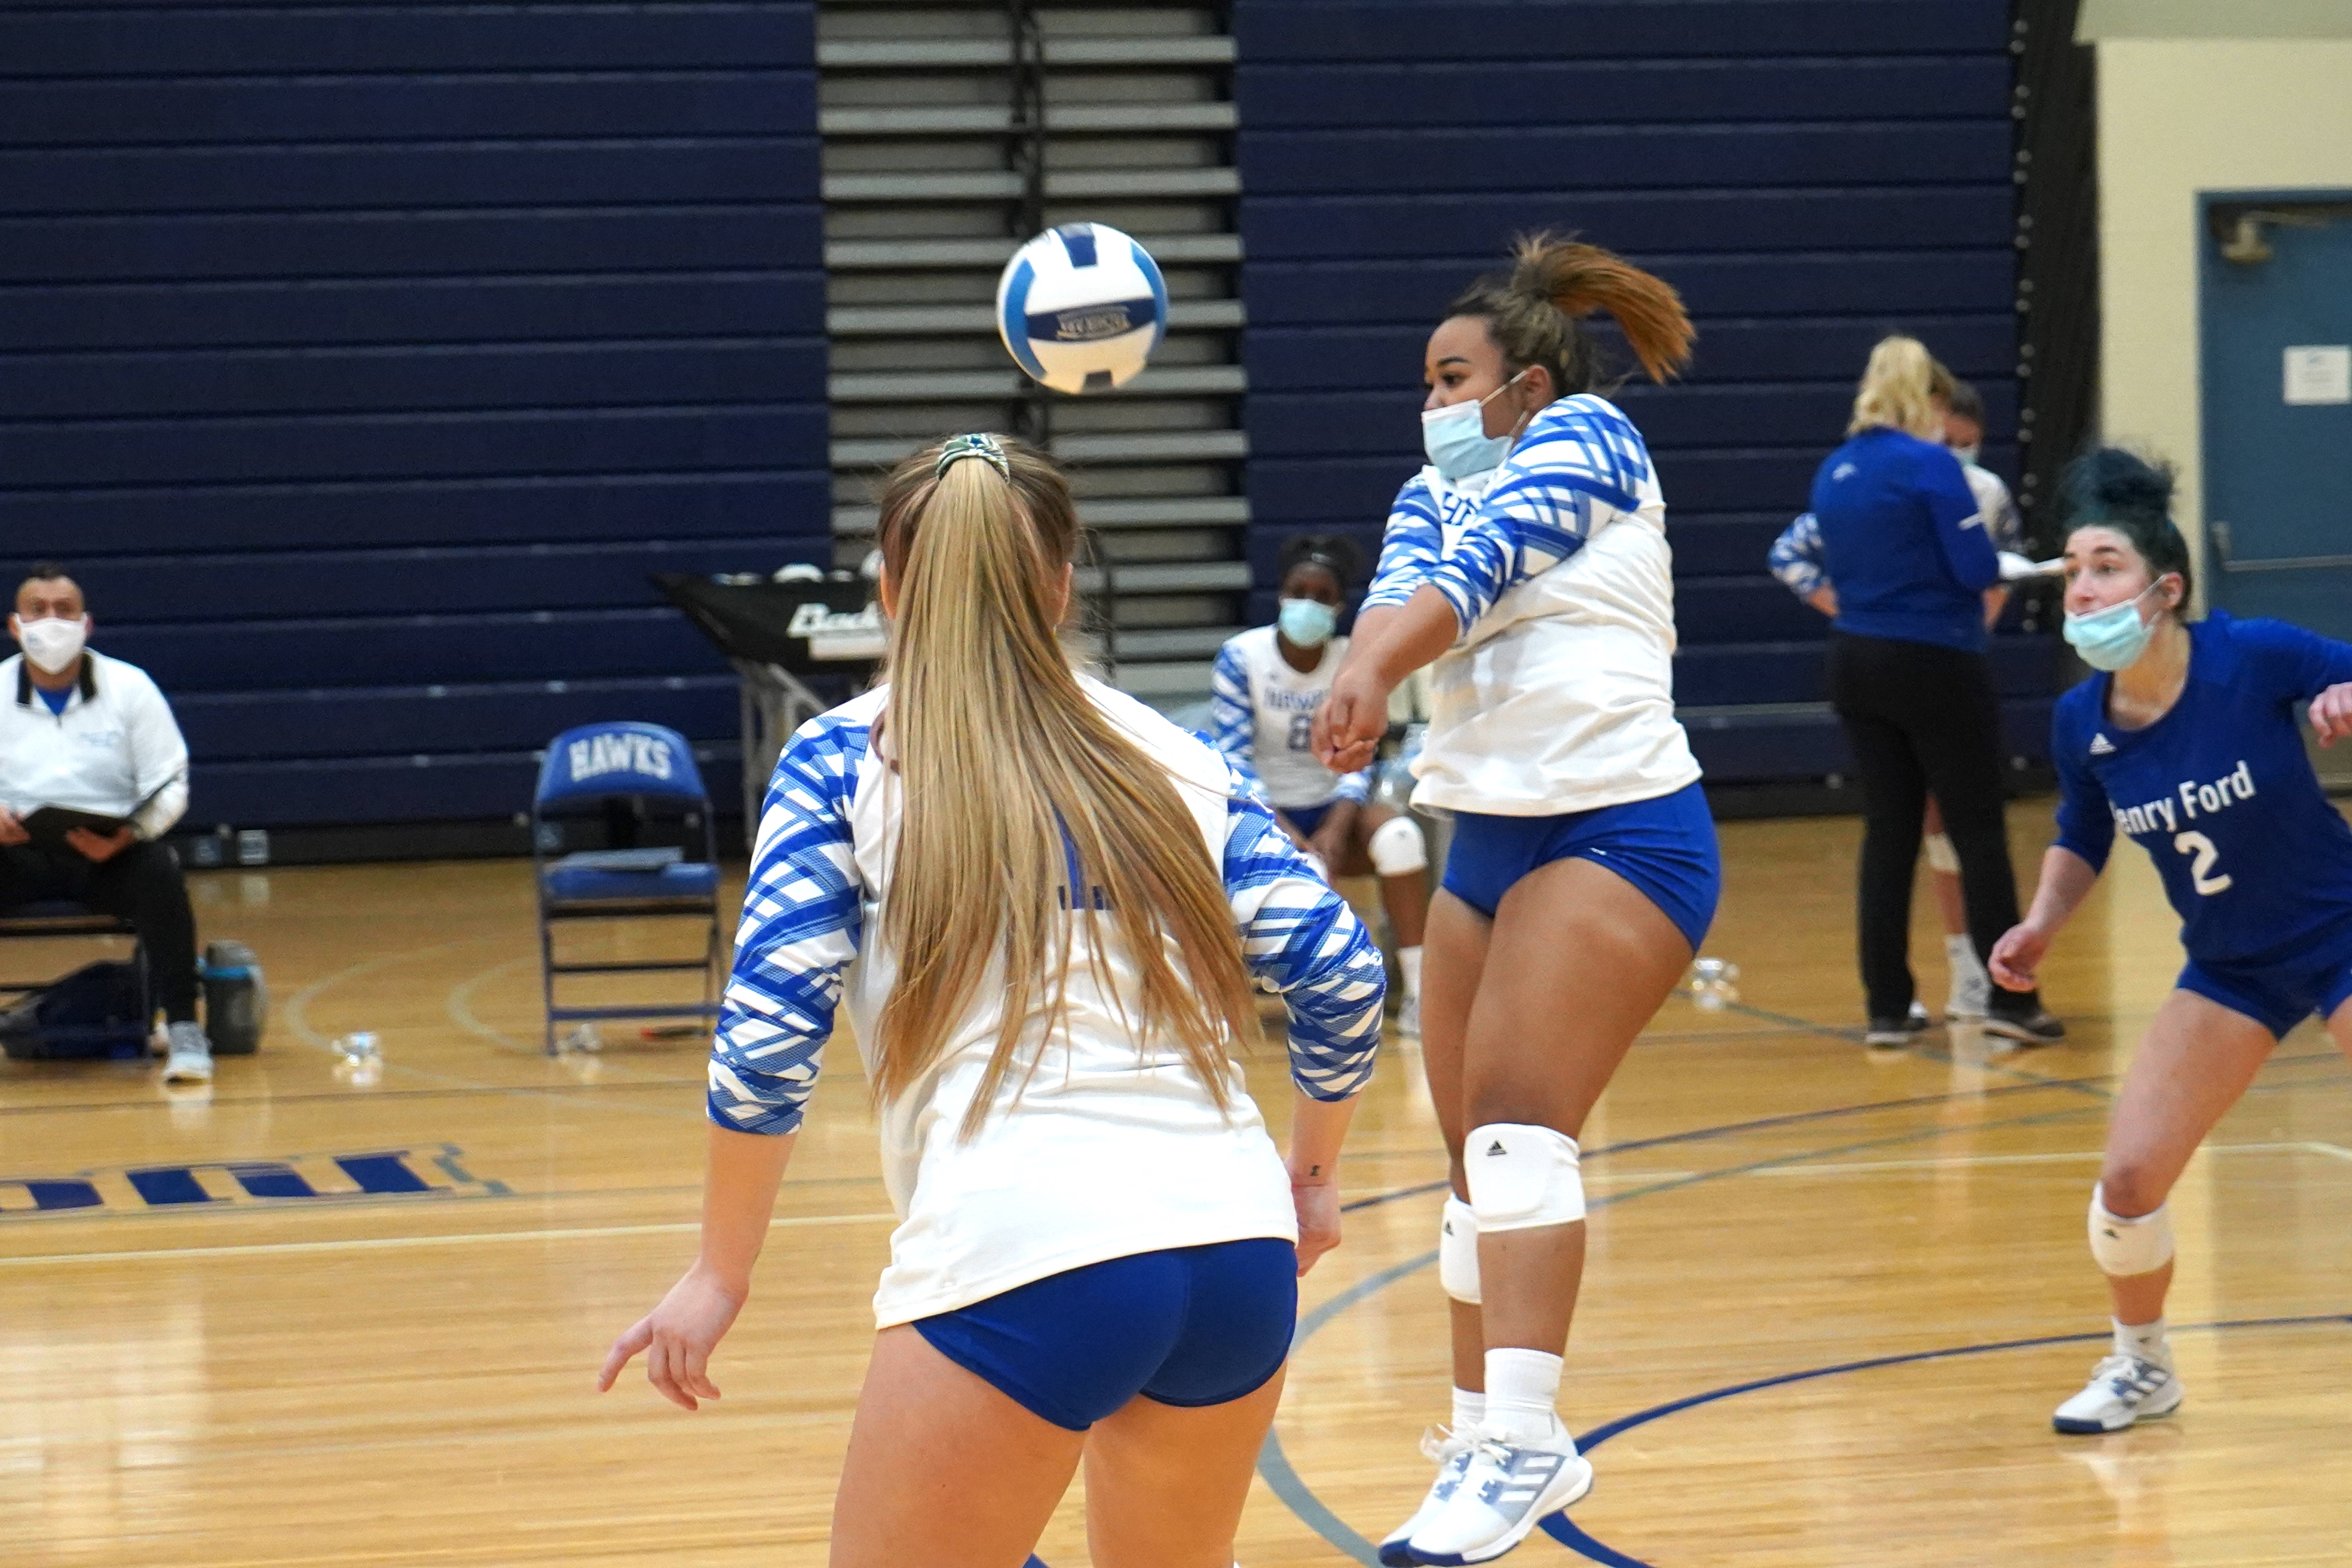 Camille Brown passes the ball.